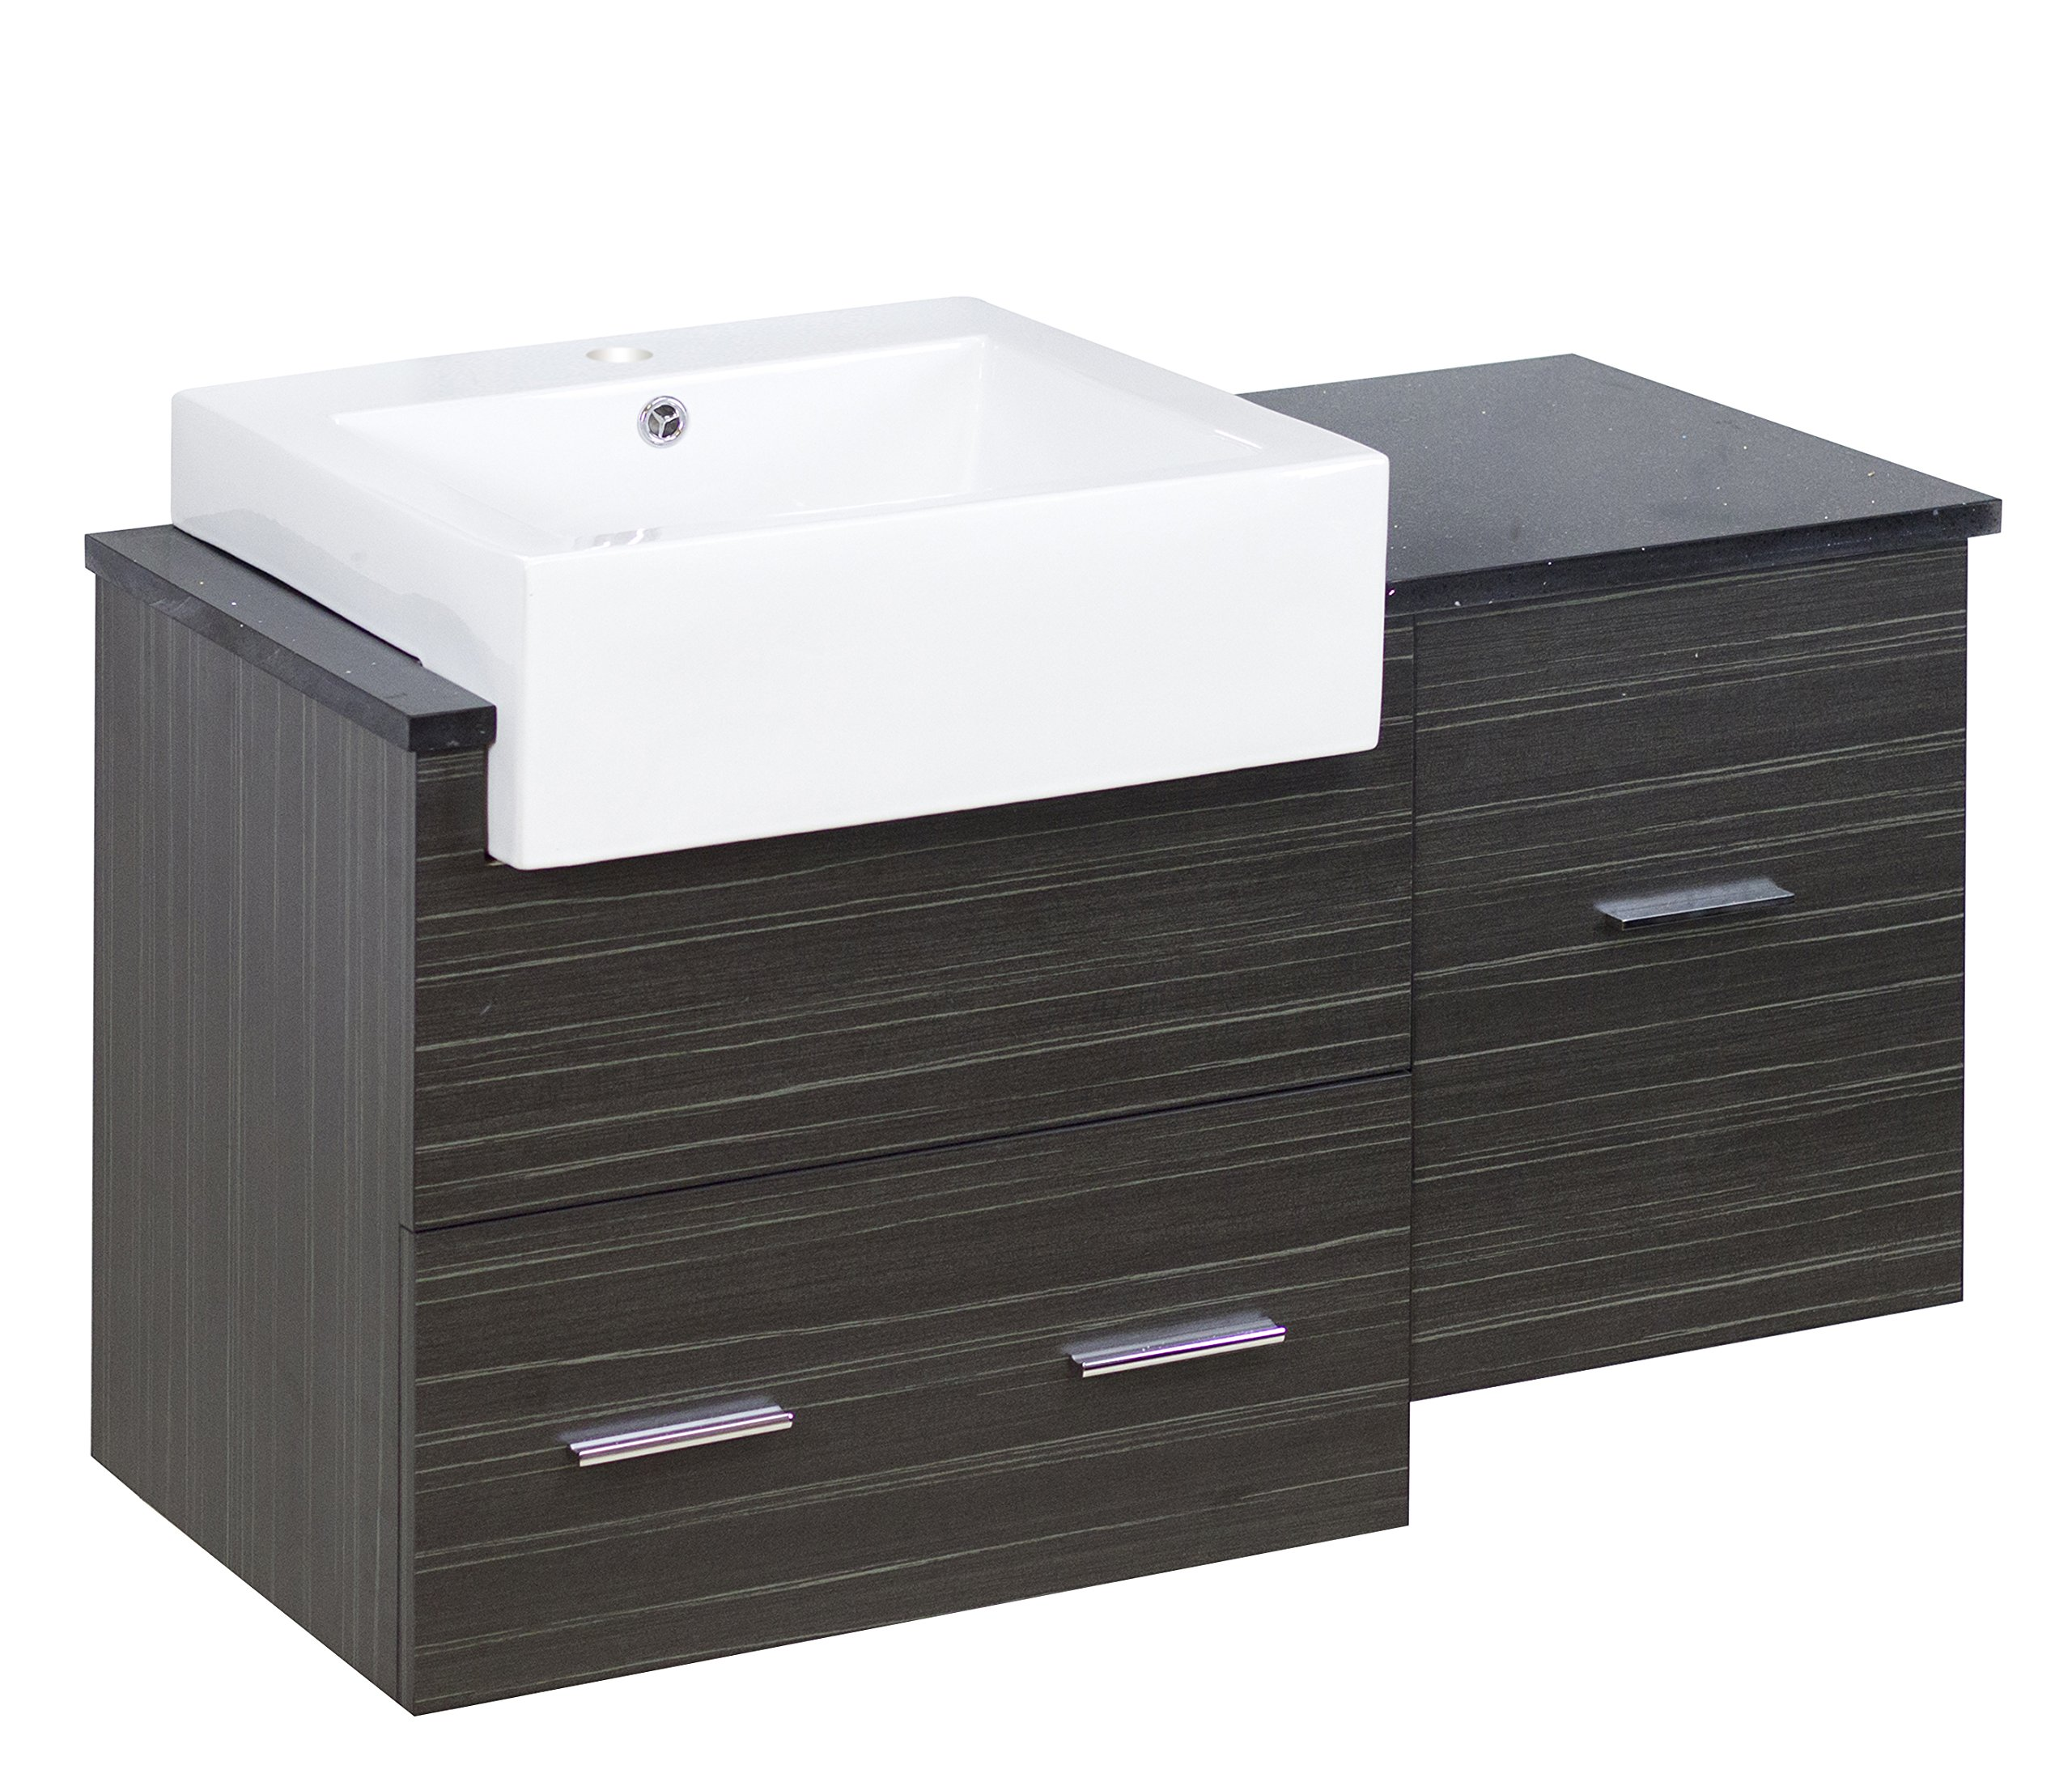 American Imaginations AI-888-1594 Plywood-Melamine Vanity Set, Dawn Grey - This modern vanity set belongs to the exquisite Xenia farmhouse design series It features a rectangle shape This vanity set is designed to be installed as a wall mount vanity set - bathroom-vanities, bathroom-fixtures-hardware, bathroom - 91SUCcvsjhL -